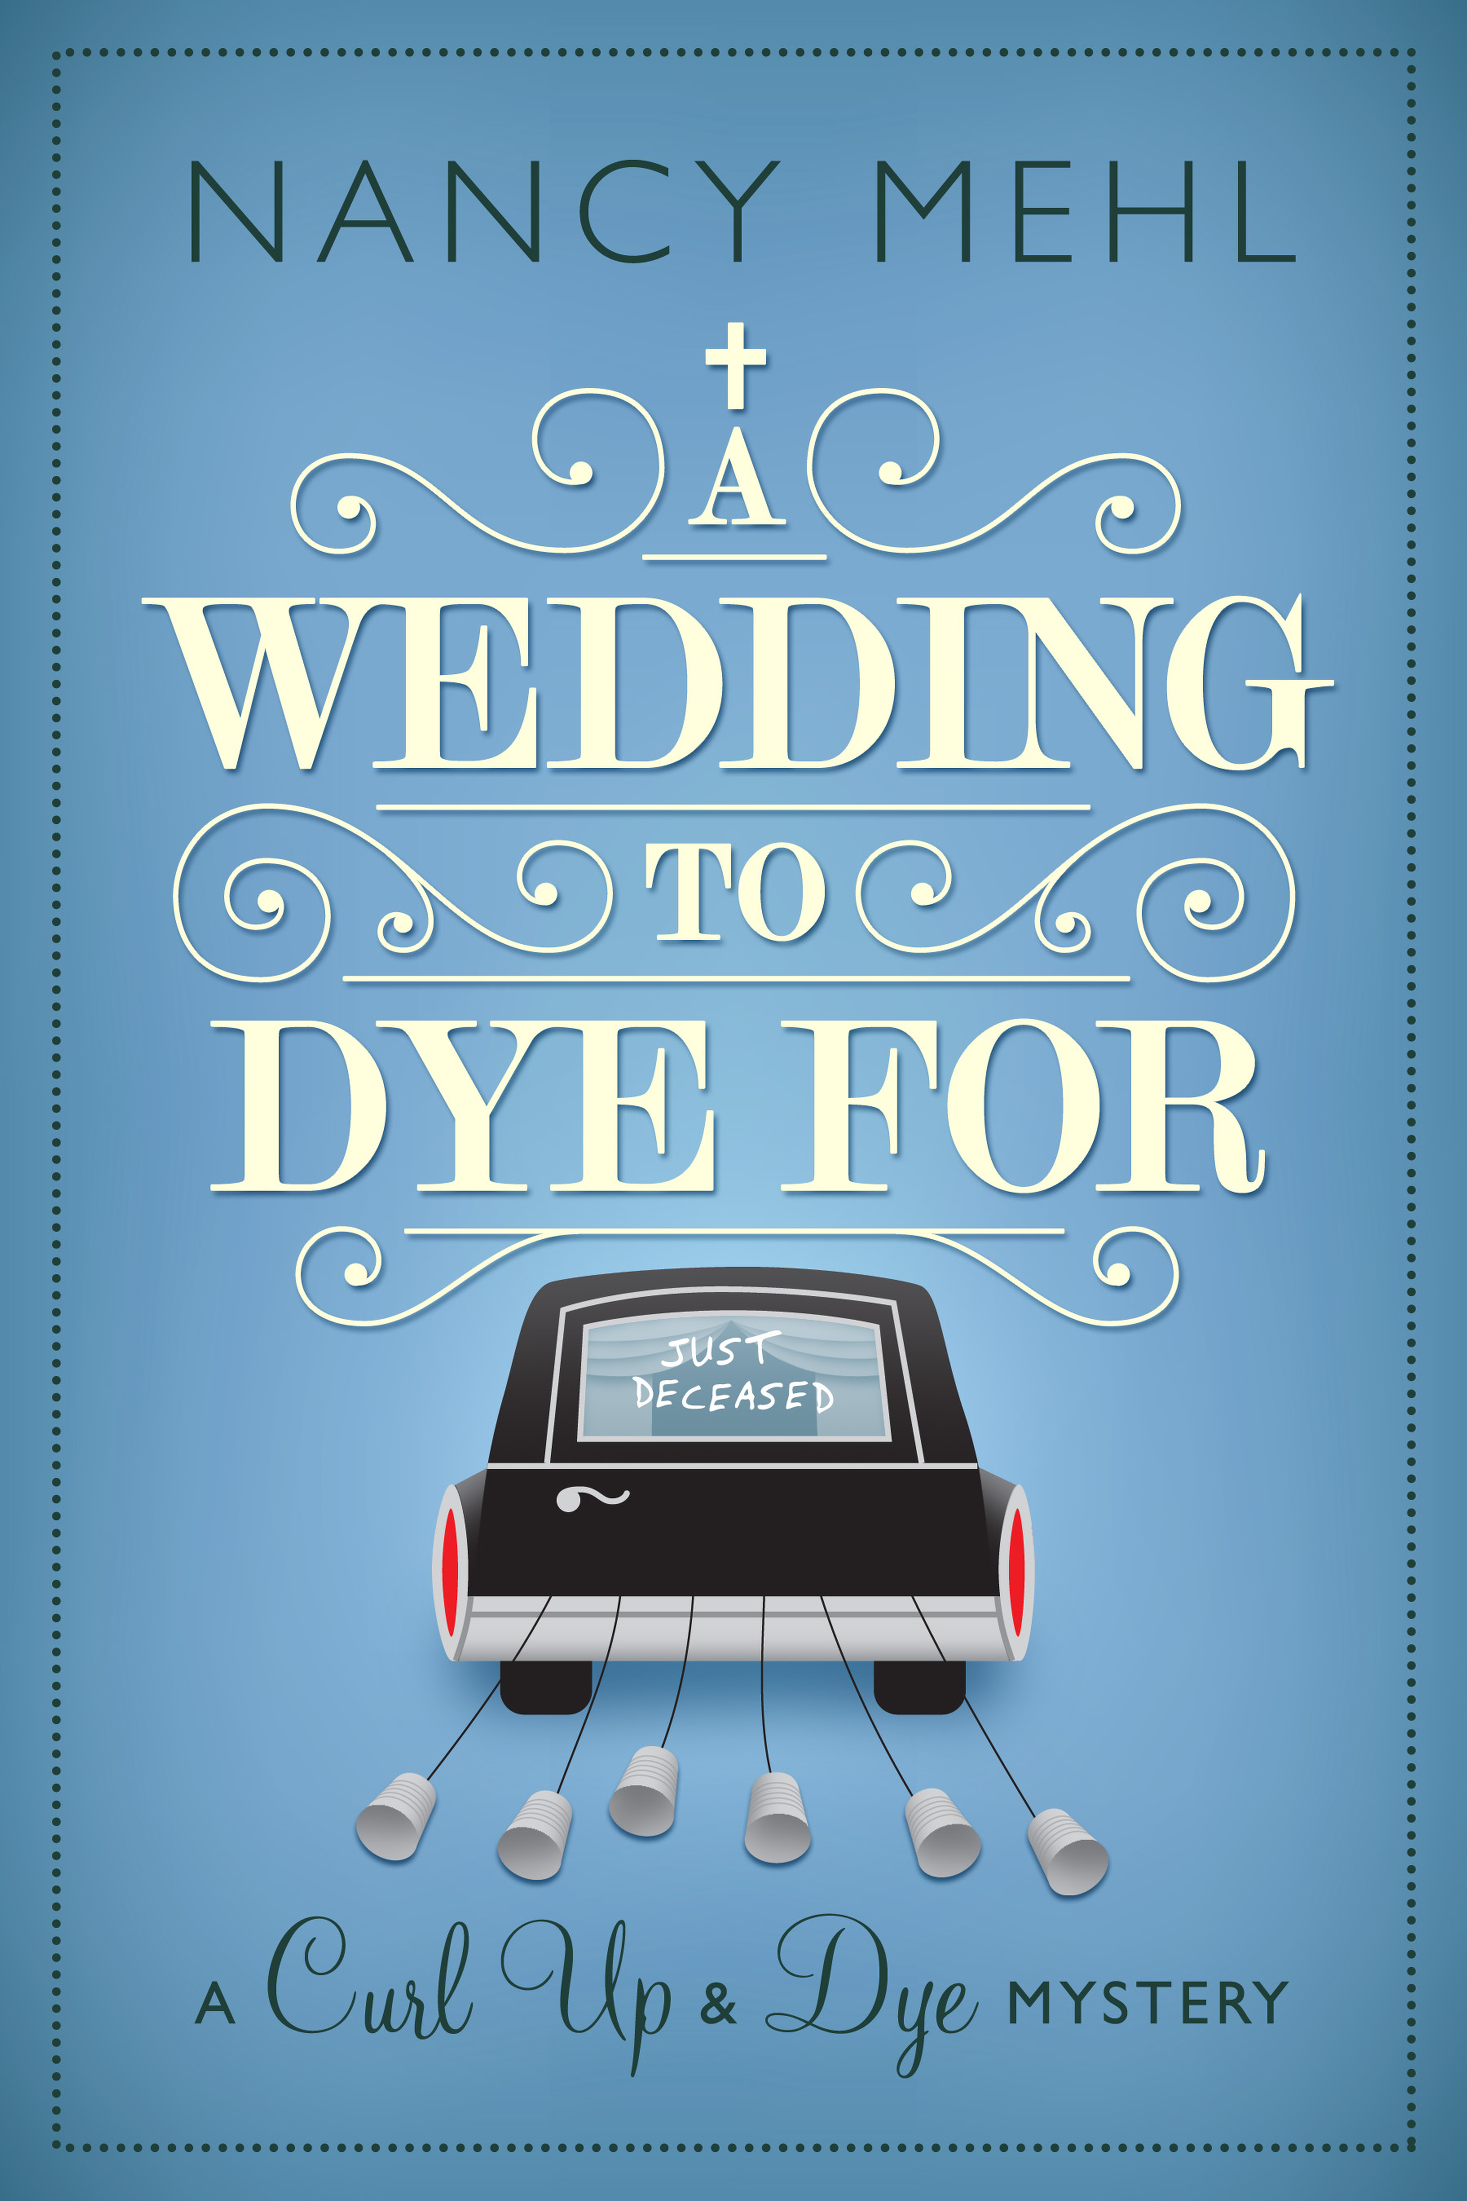 Nancy Mehl - A Wedding to Dye For